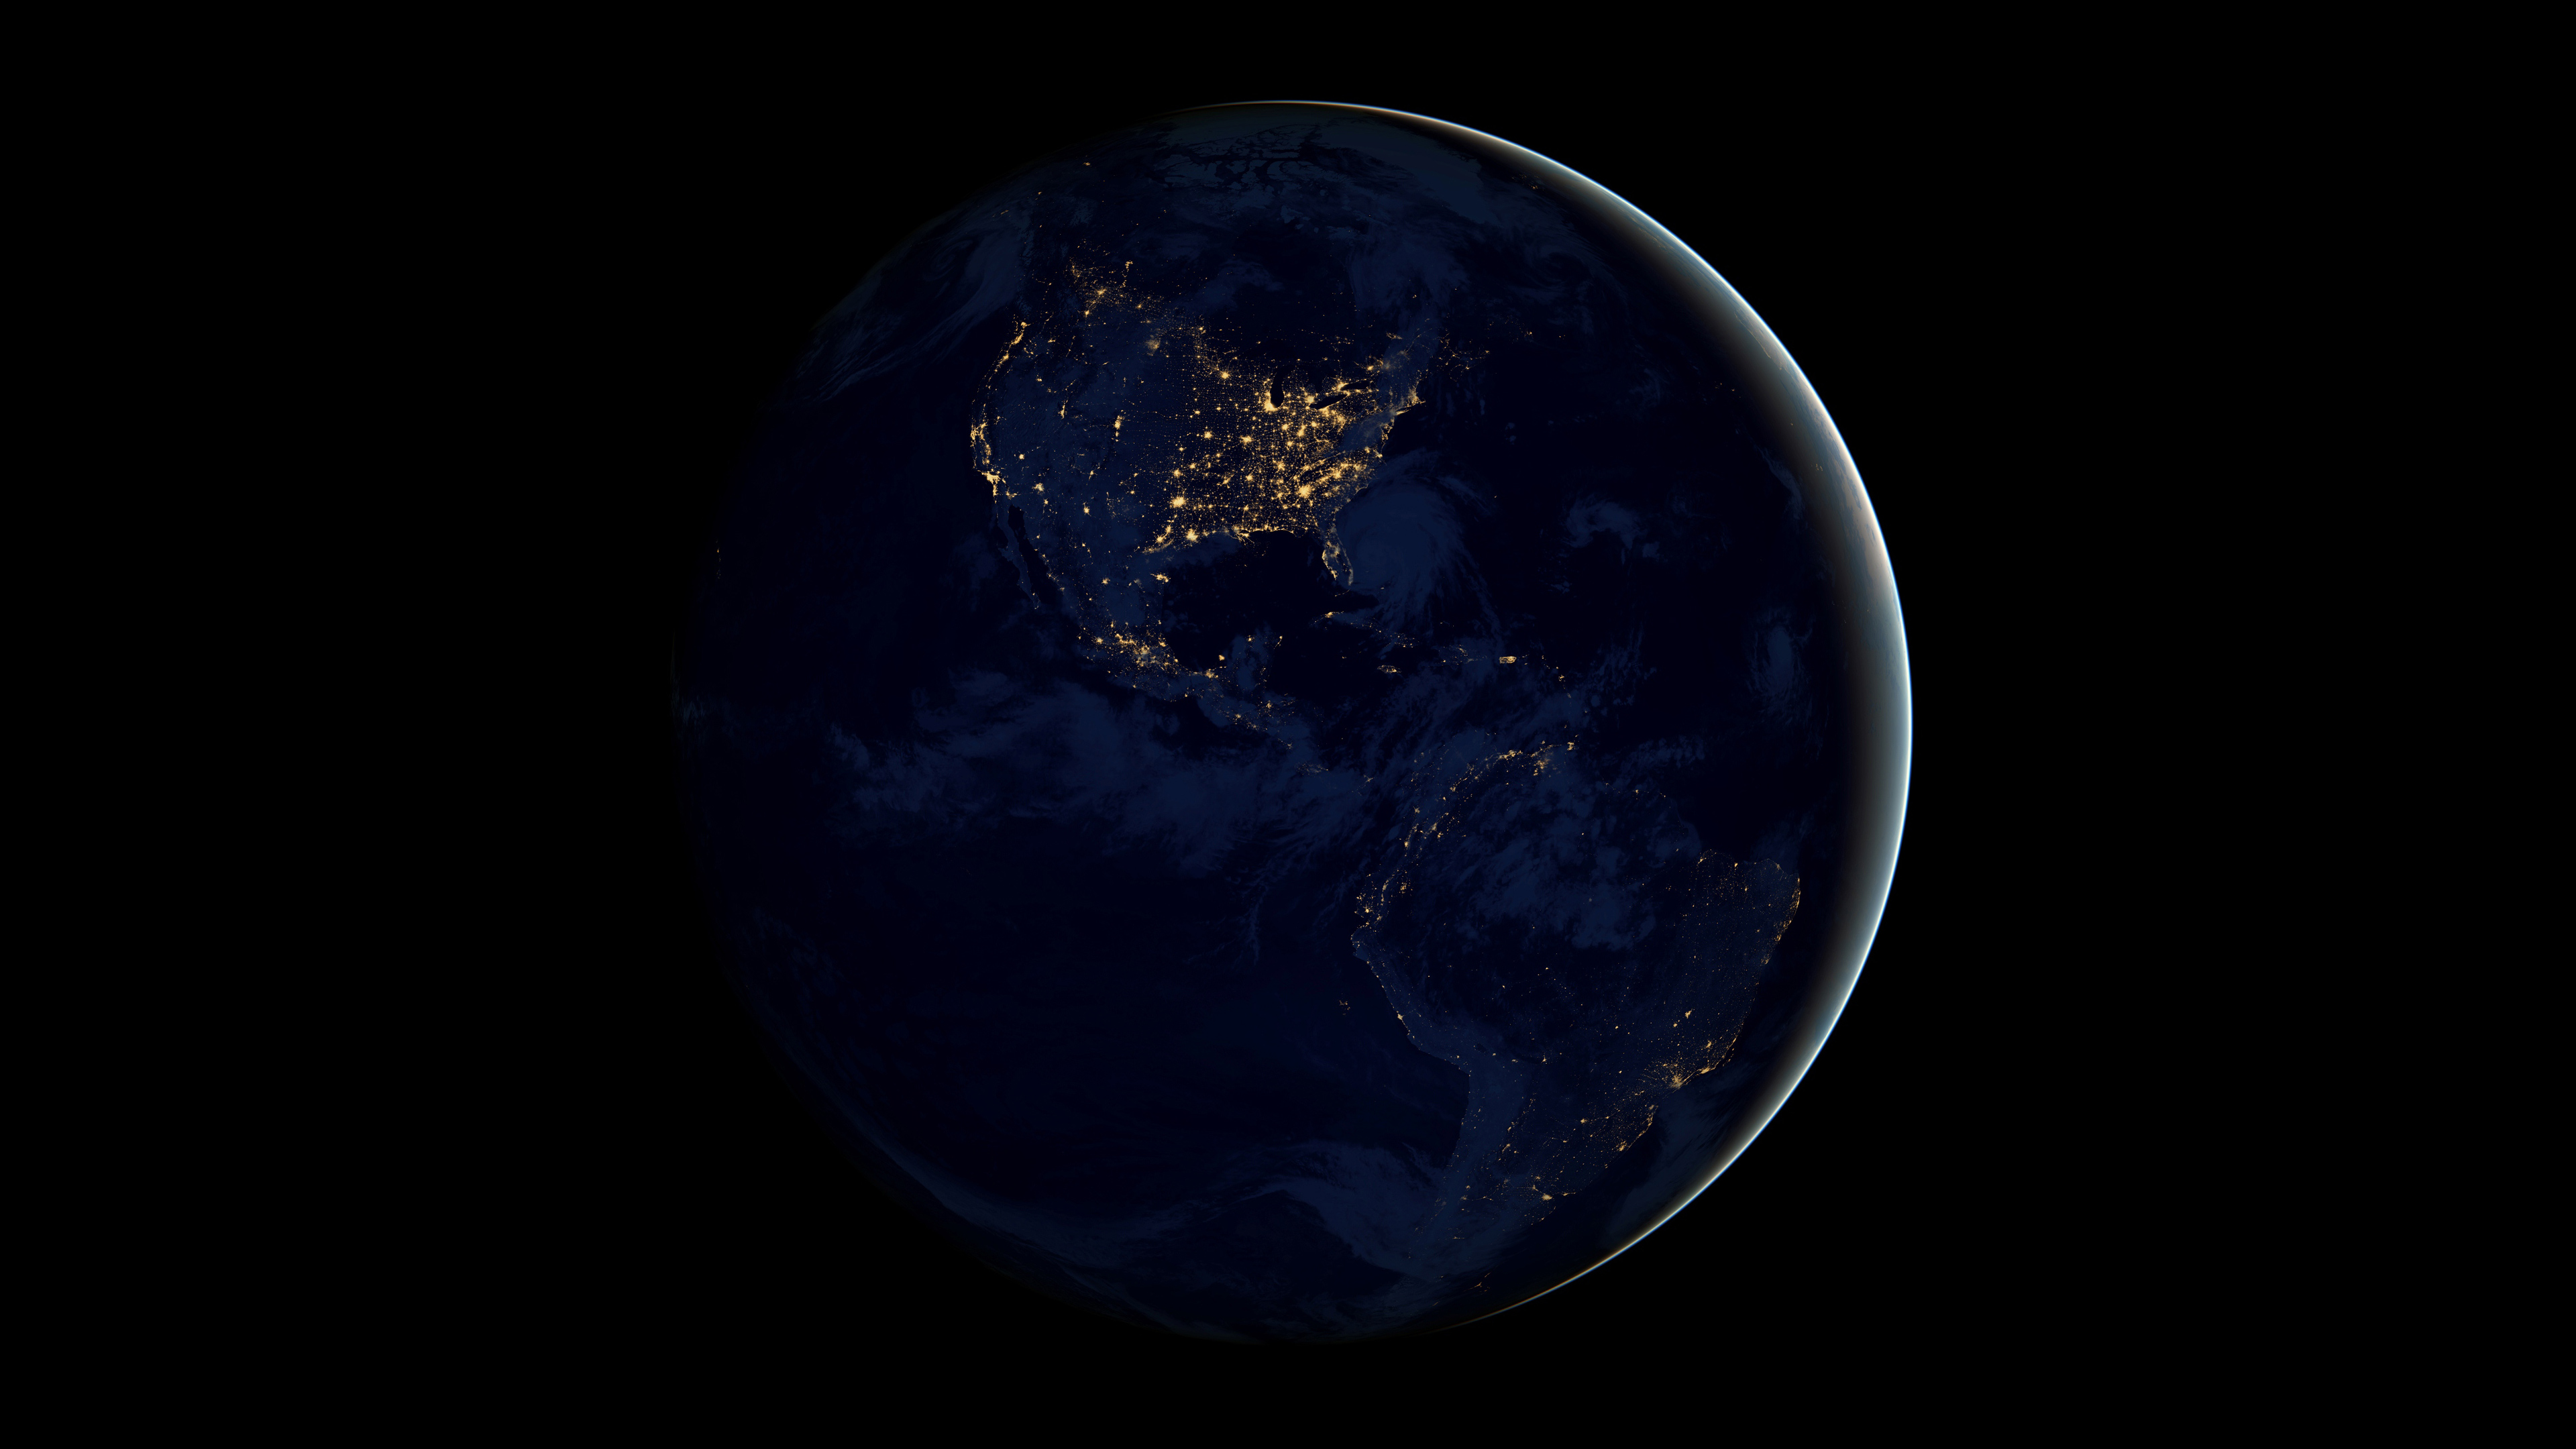 Earth From Space 4k, HD Digital Universe, 4k Wallpapers ...